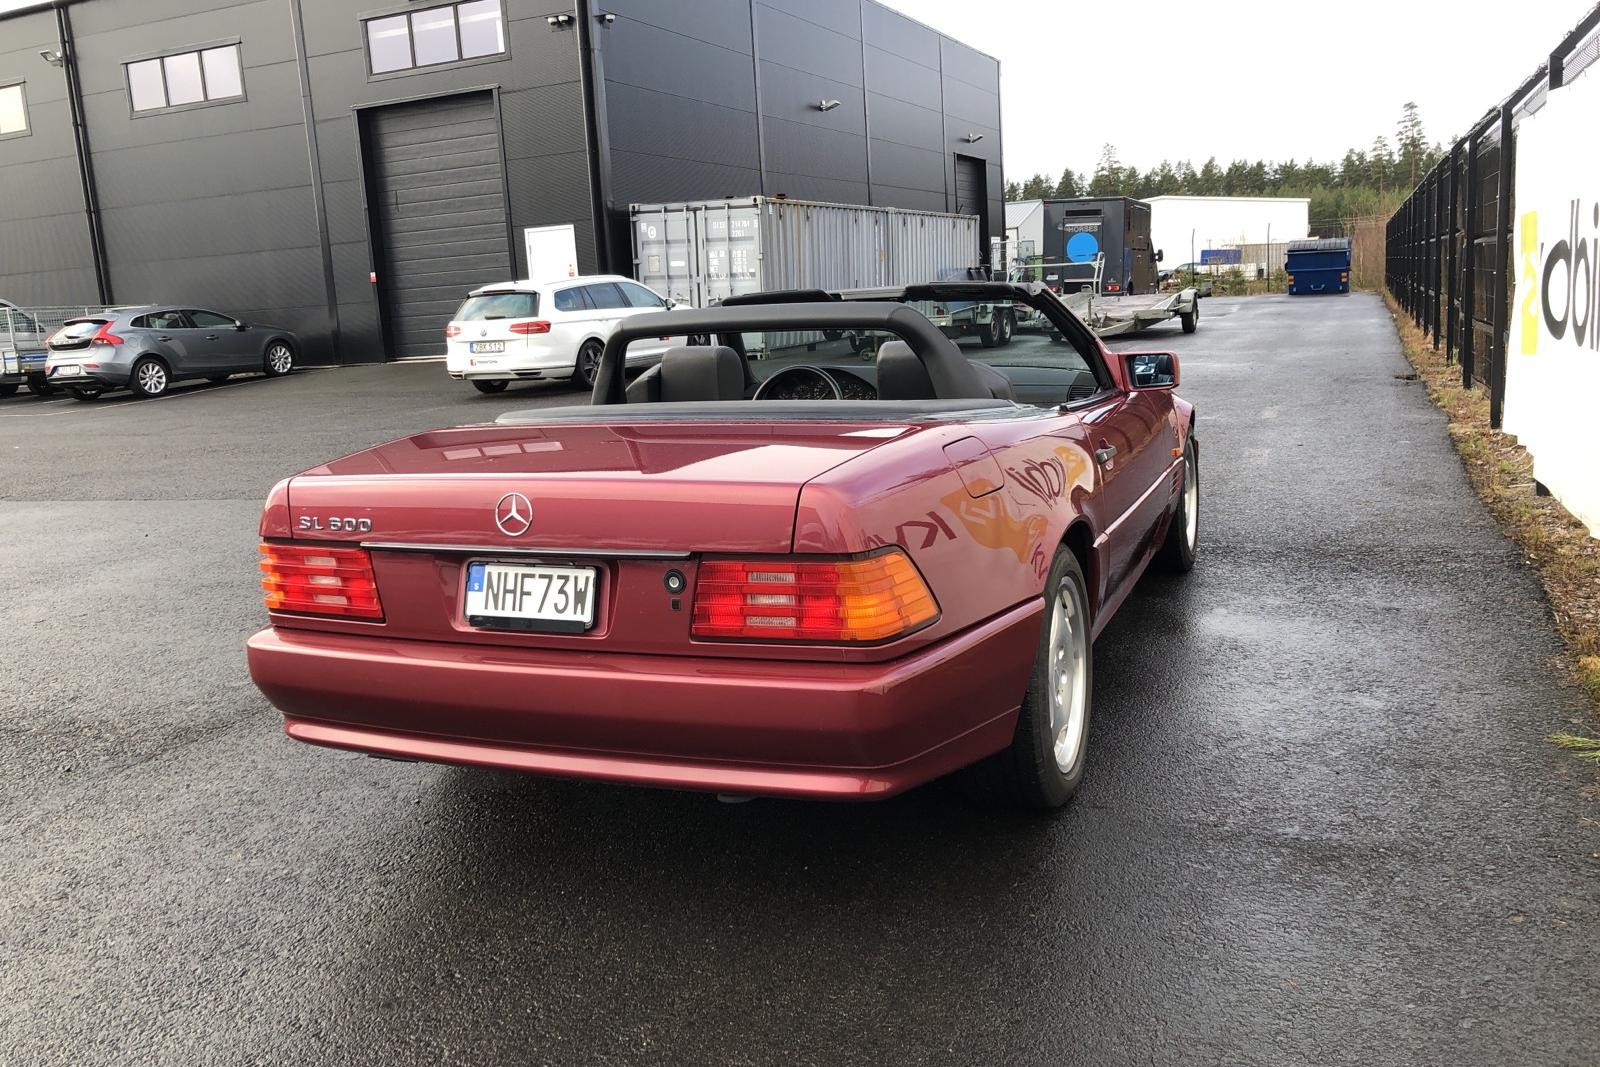 Mercedes SL 320 R129 (231hk) - 51 370 km - Automatic - red - 1995